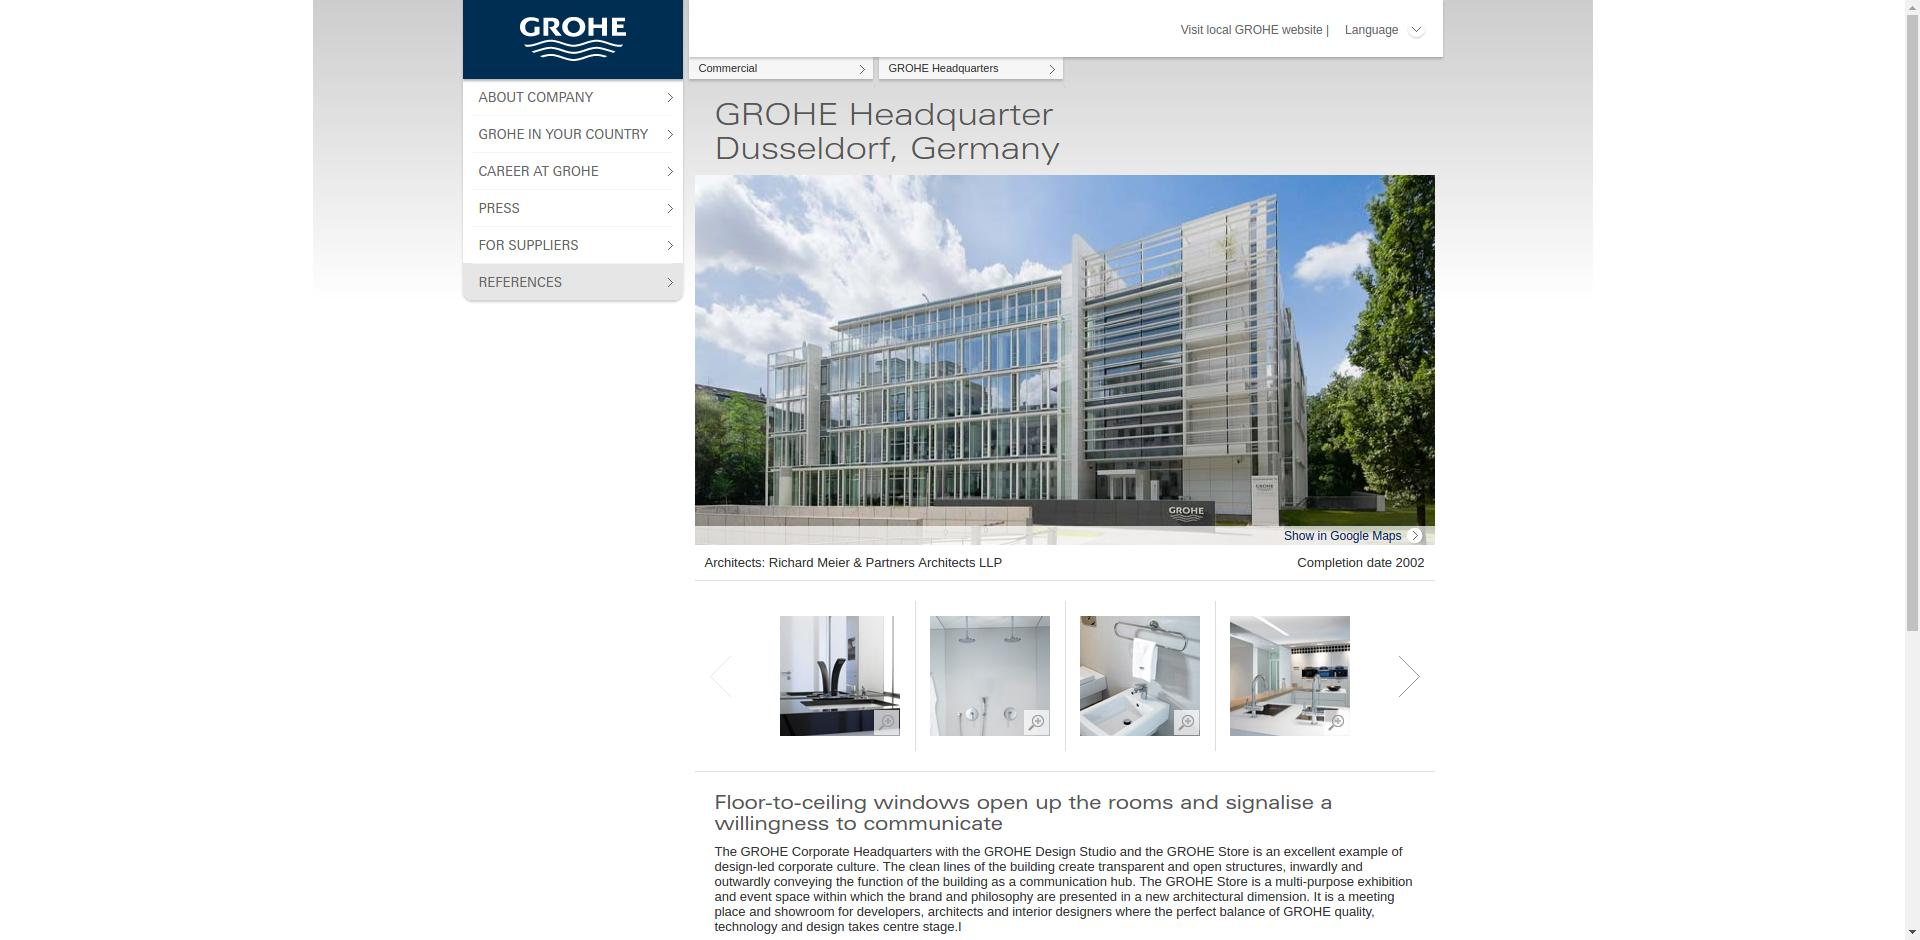 Grohe company profile - Office locations, Competitors, Financials ...